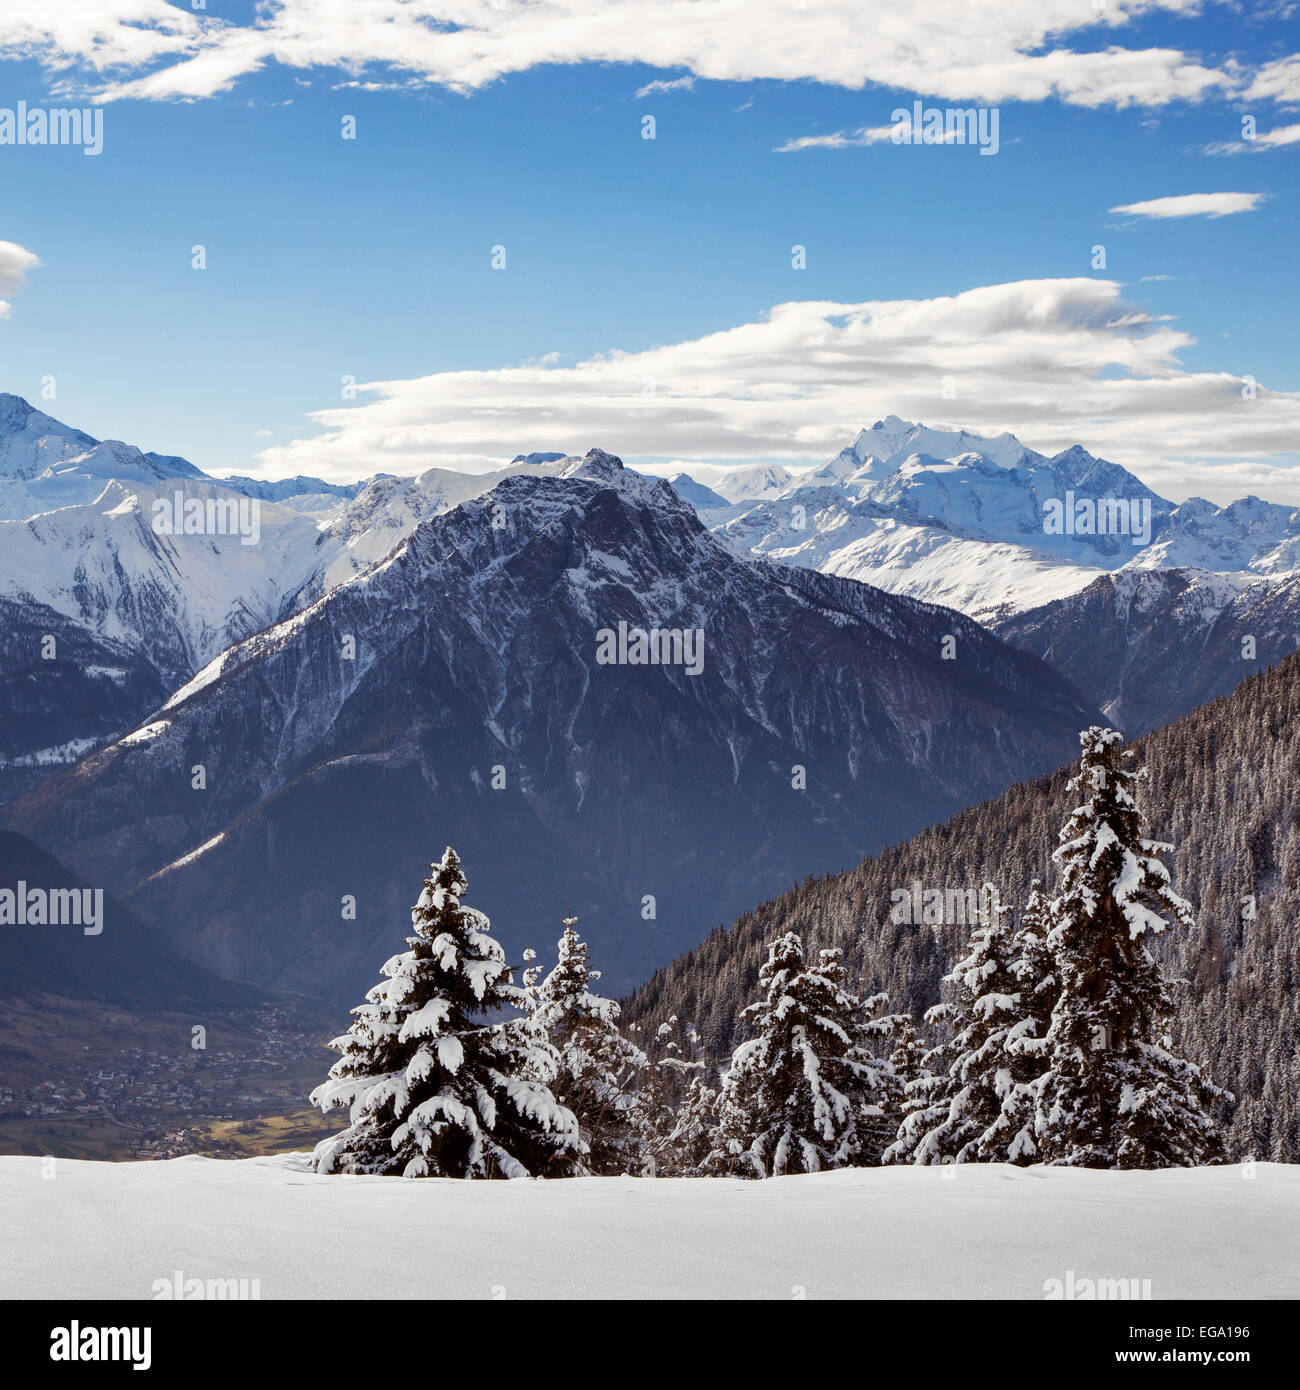 Snow covered spruce trees and Alpine mountains in winter in the Swiss Alps at Wallis / Valais, Switzerland - Stock Image